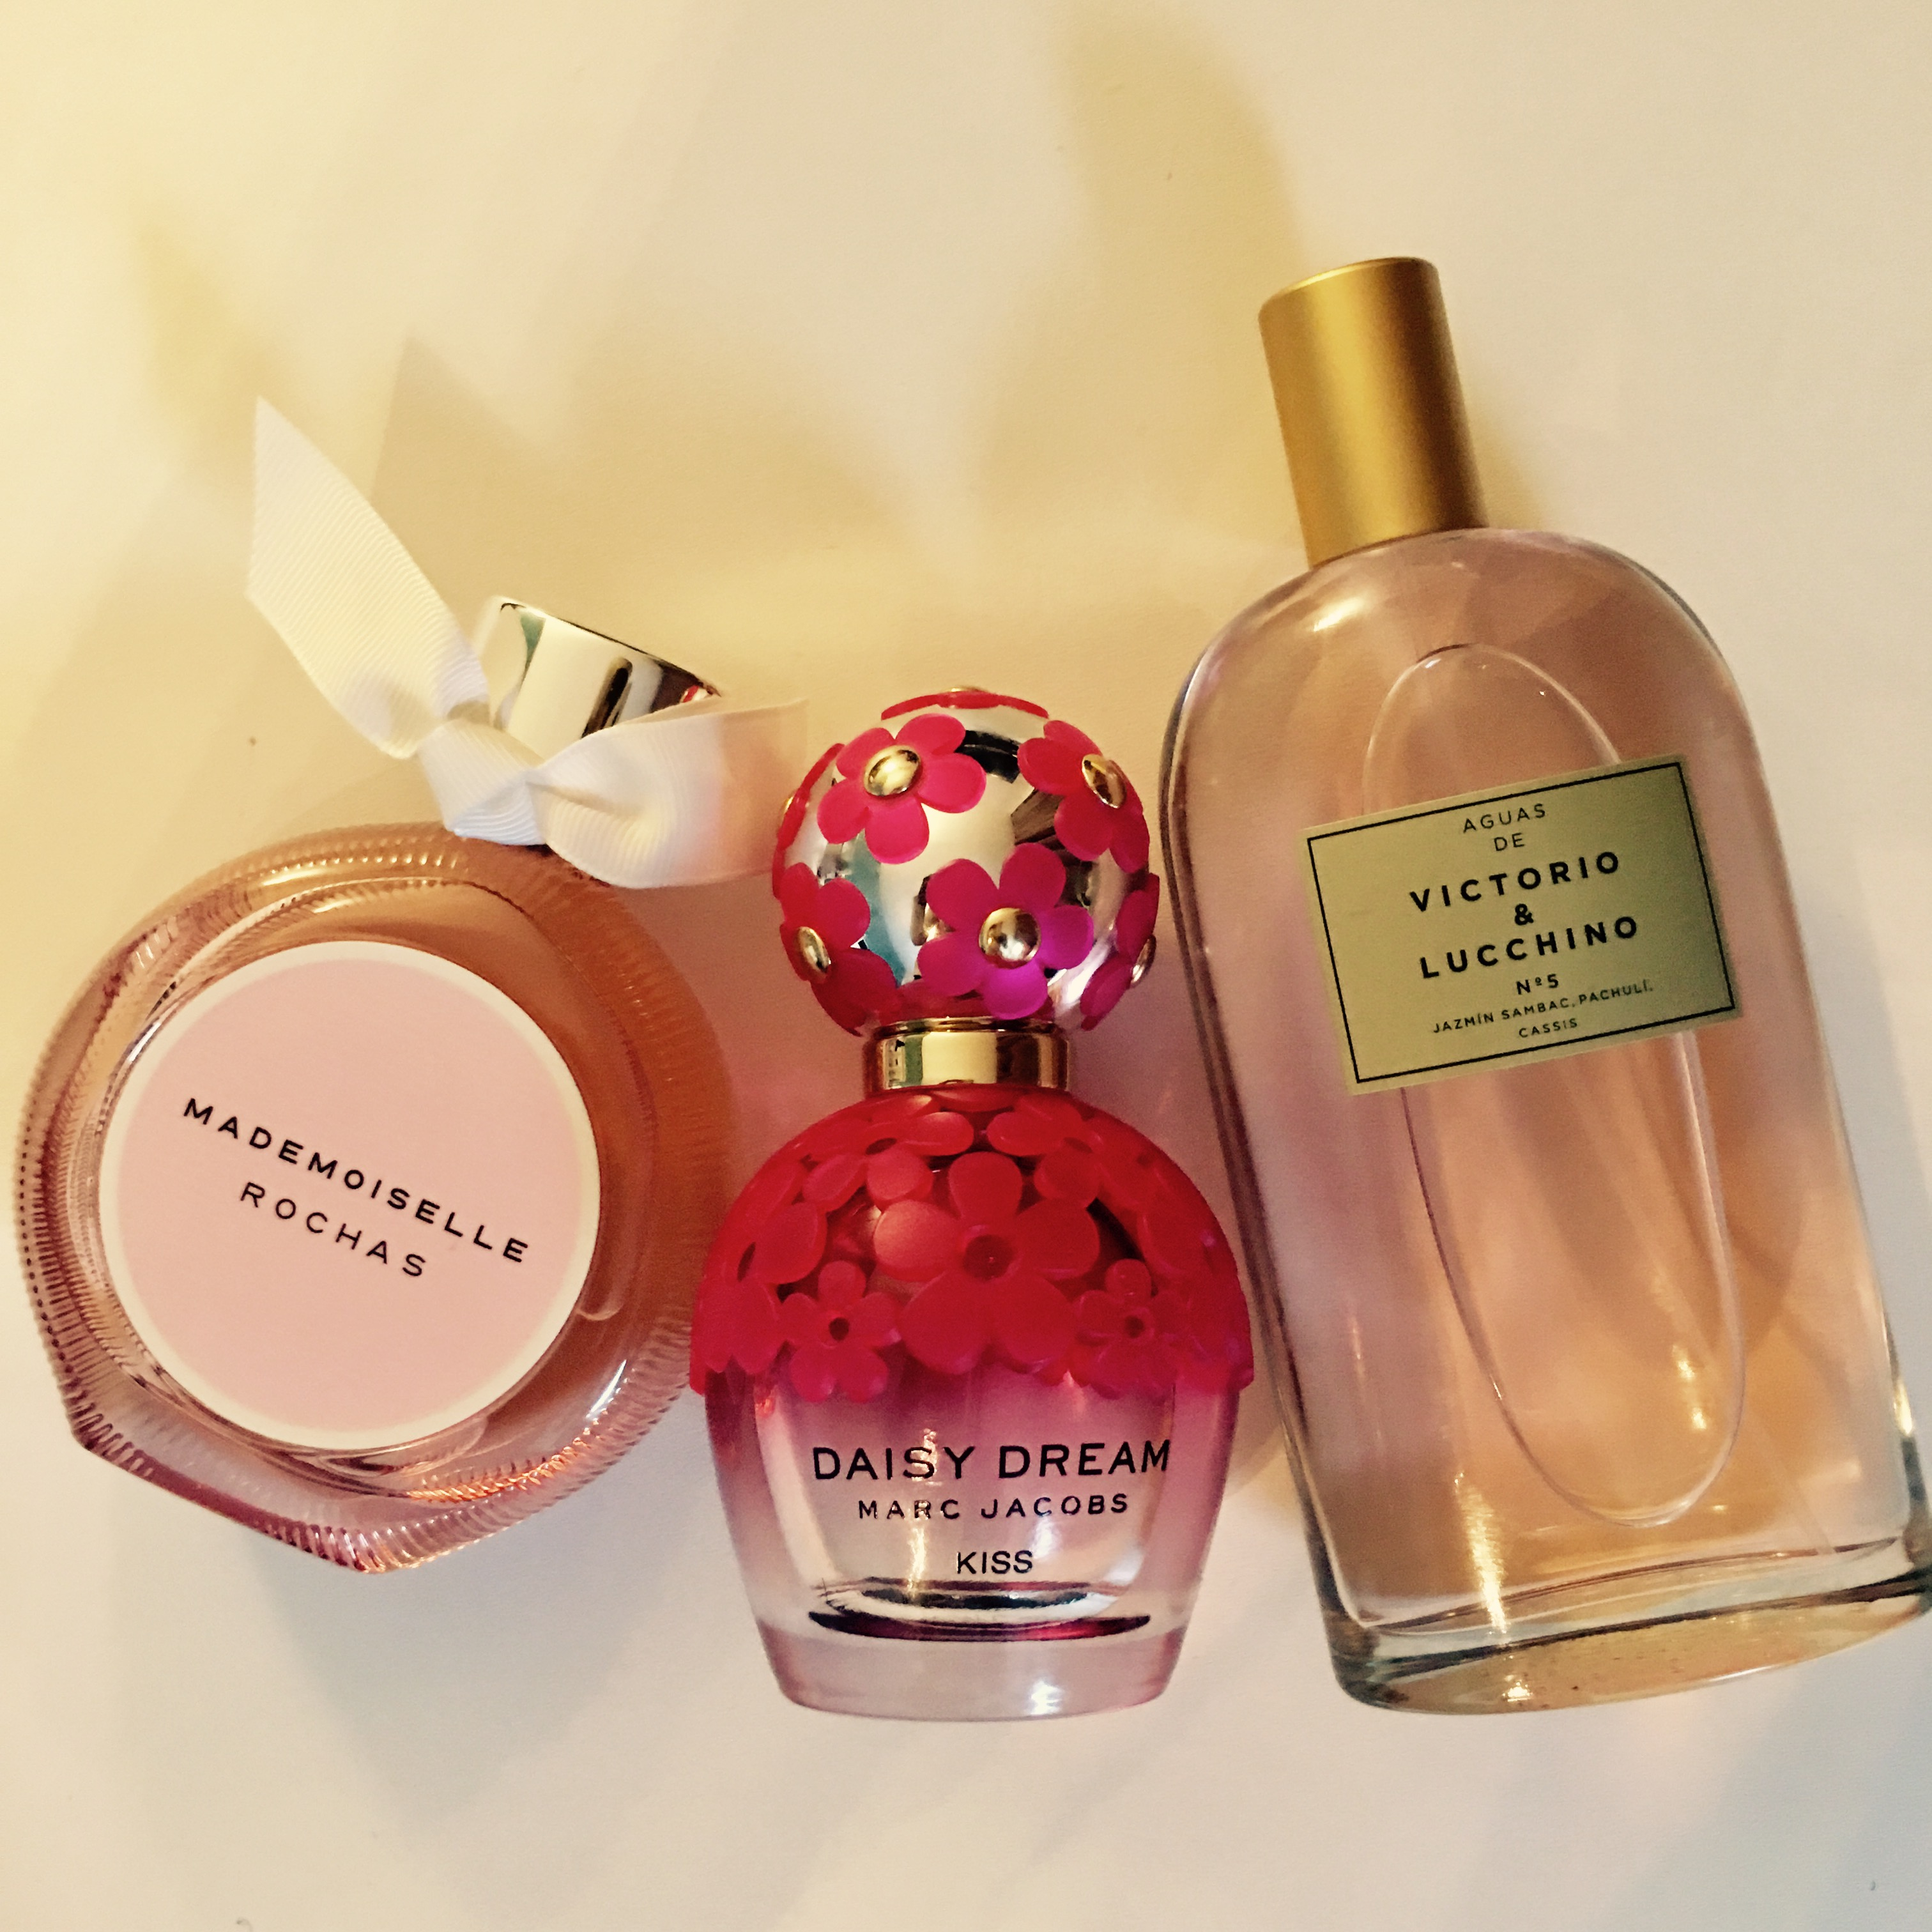 Mes parfums fruités du moment-MademoiselleRochas;DaisyKiss;Victorio_Lucchino